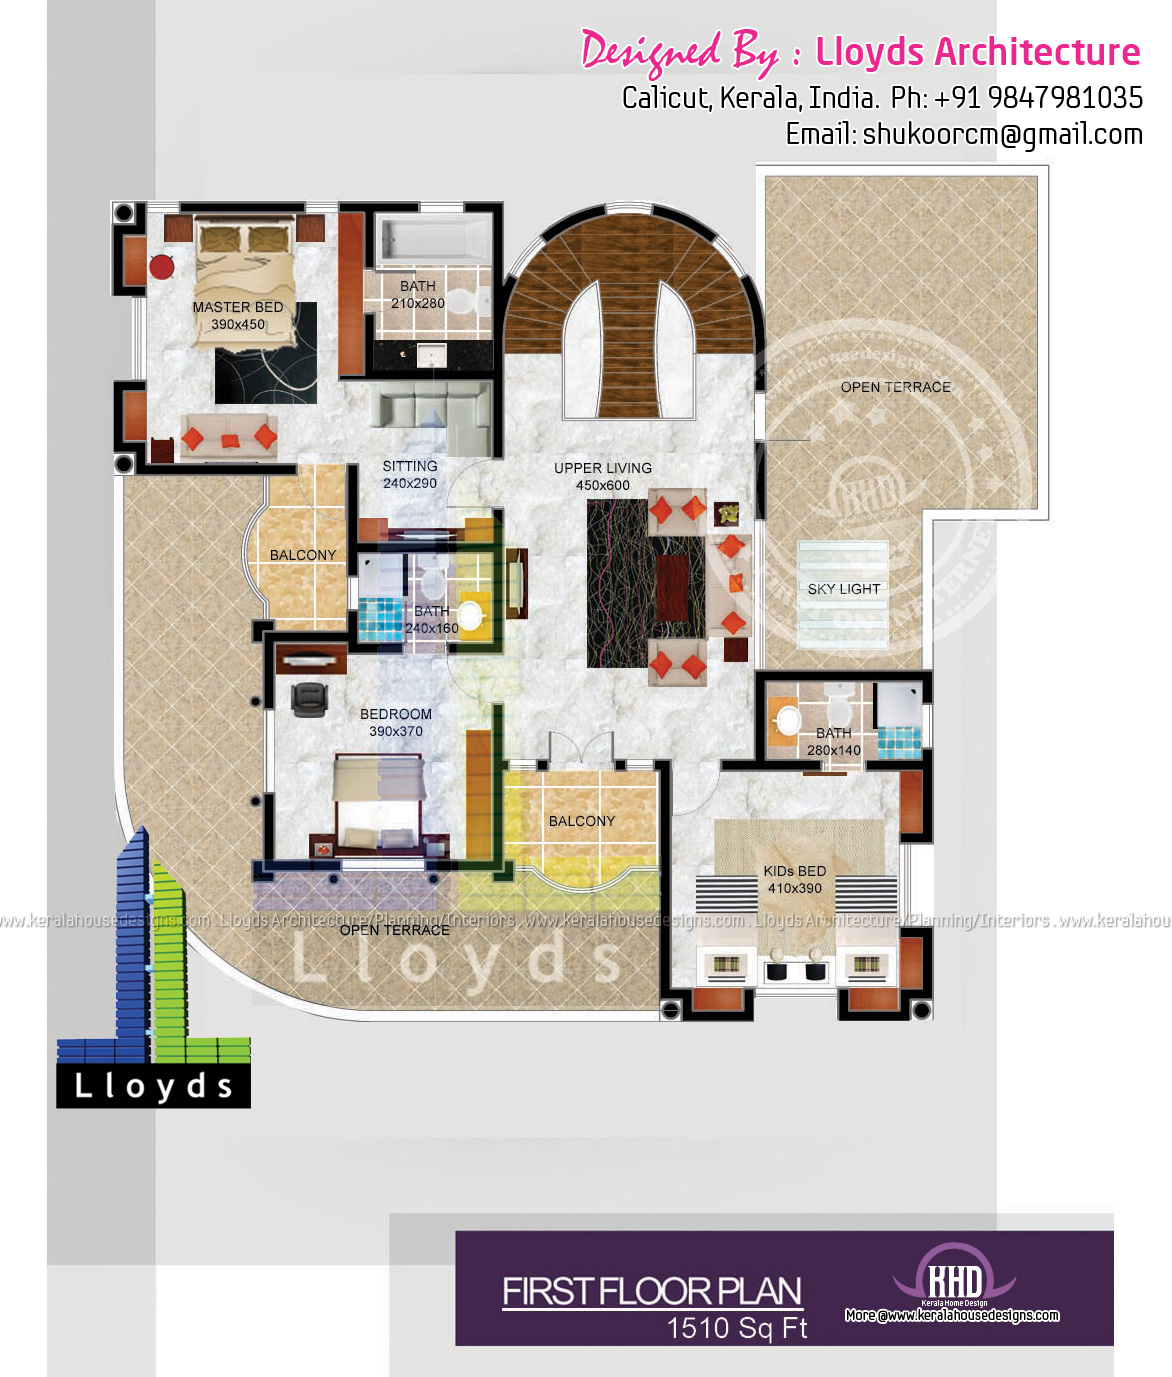 5 bedroom luxurious bungalow floor plan and 3d view for Plan of bungalow in india